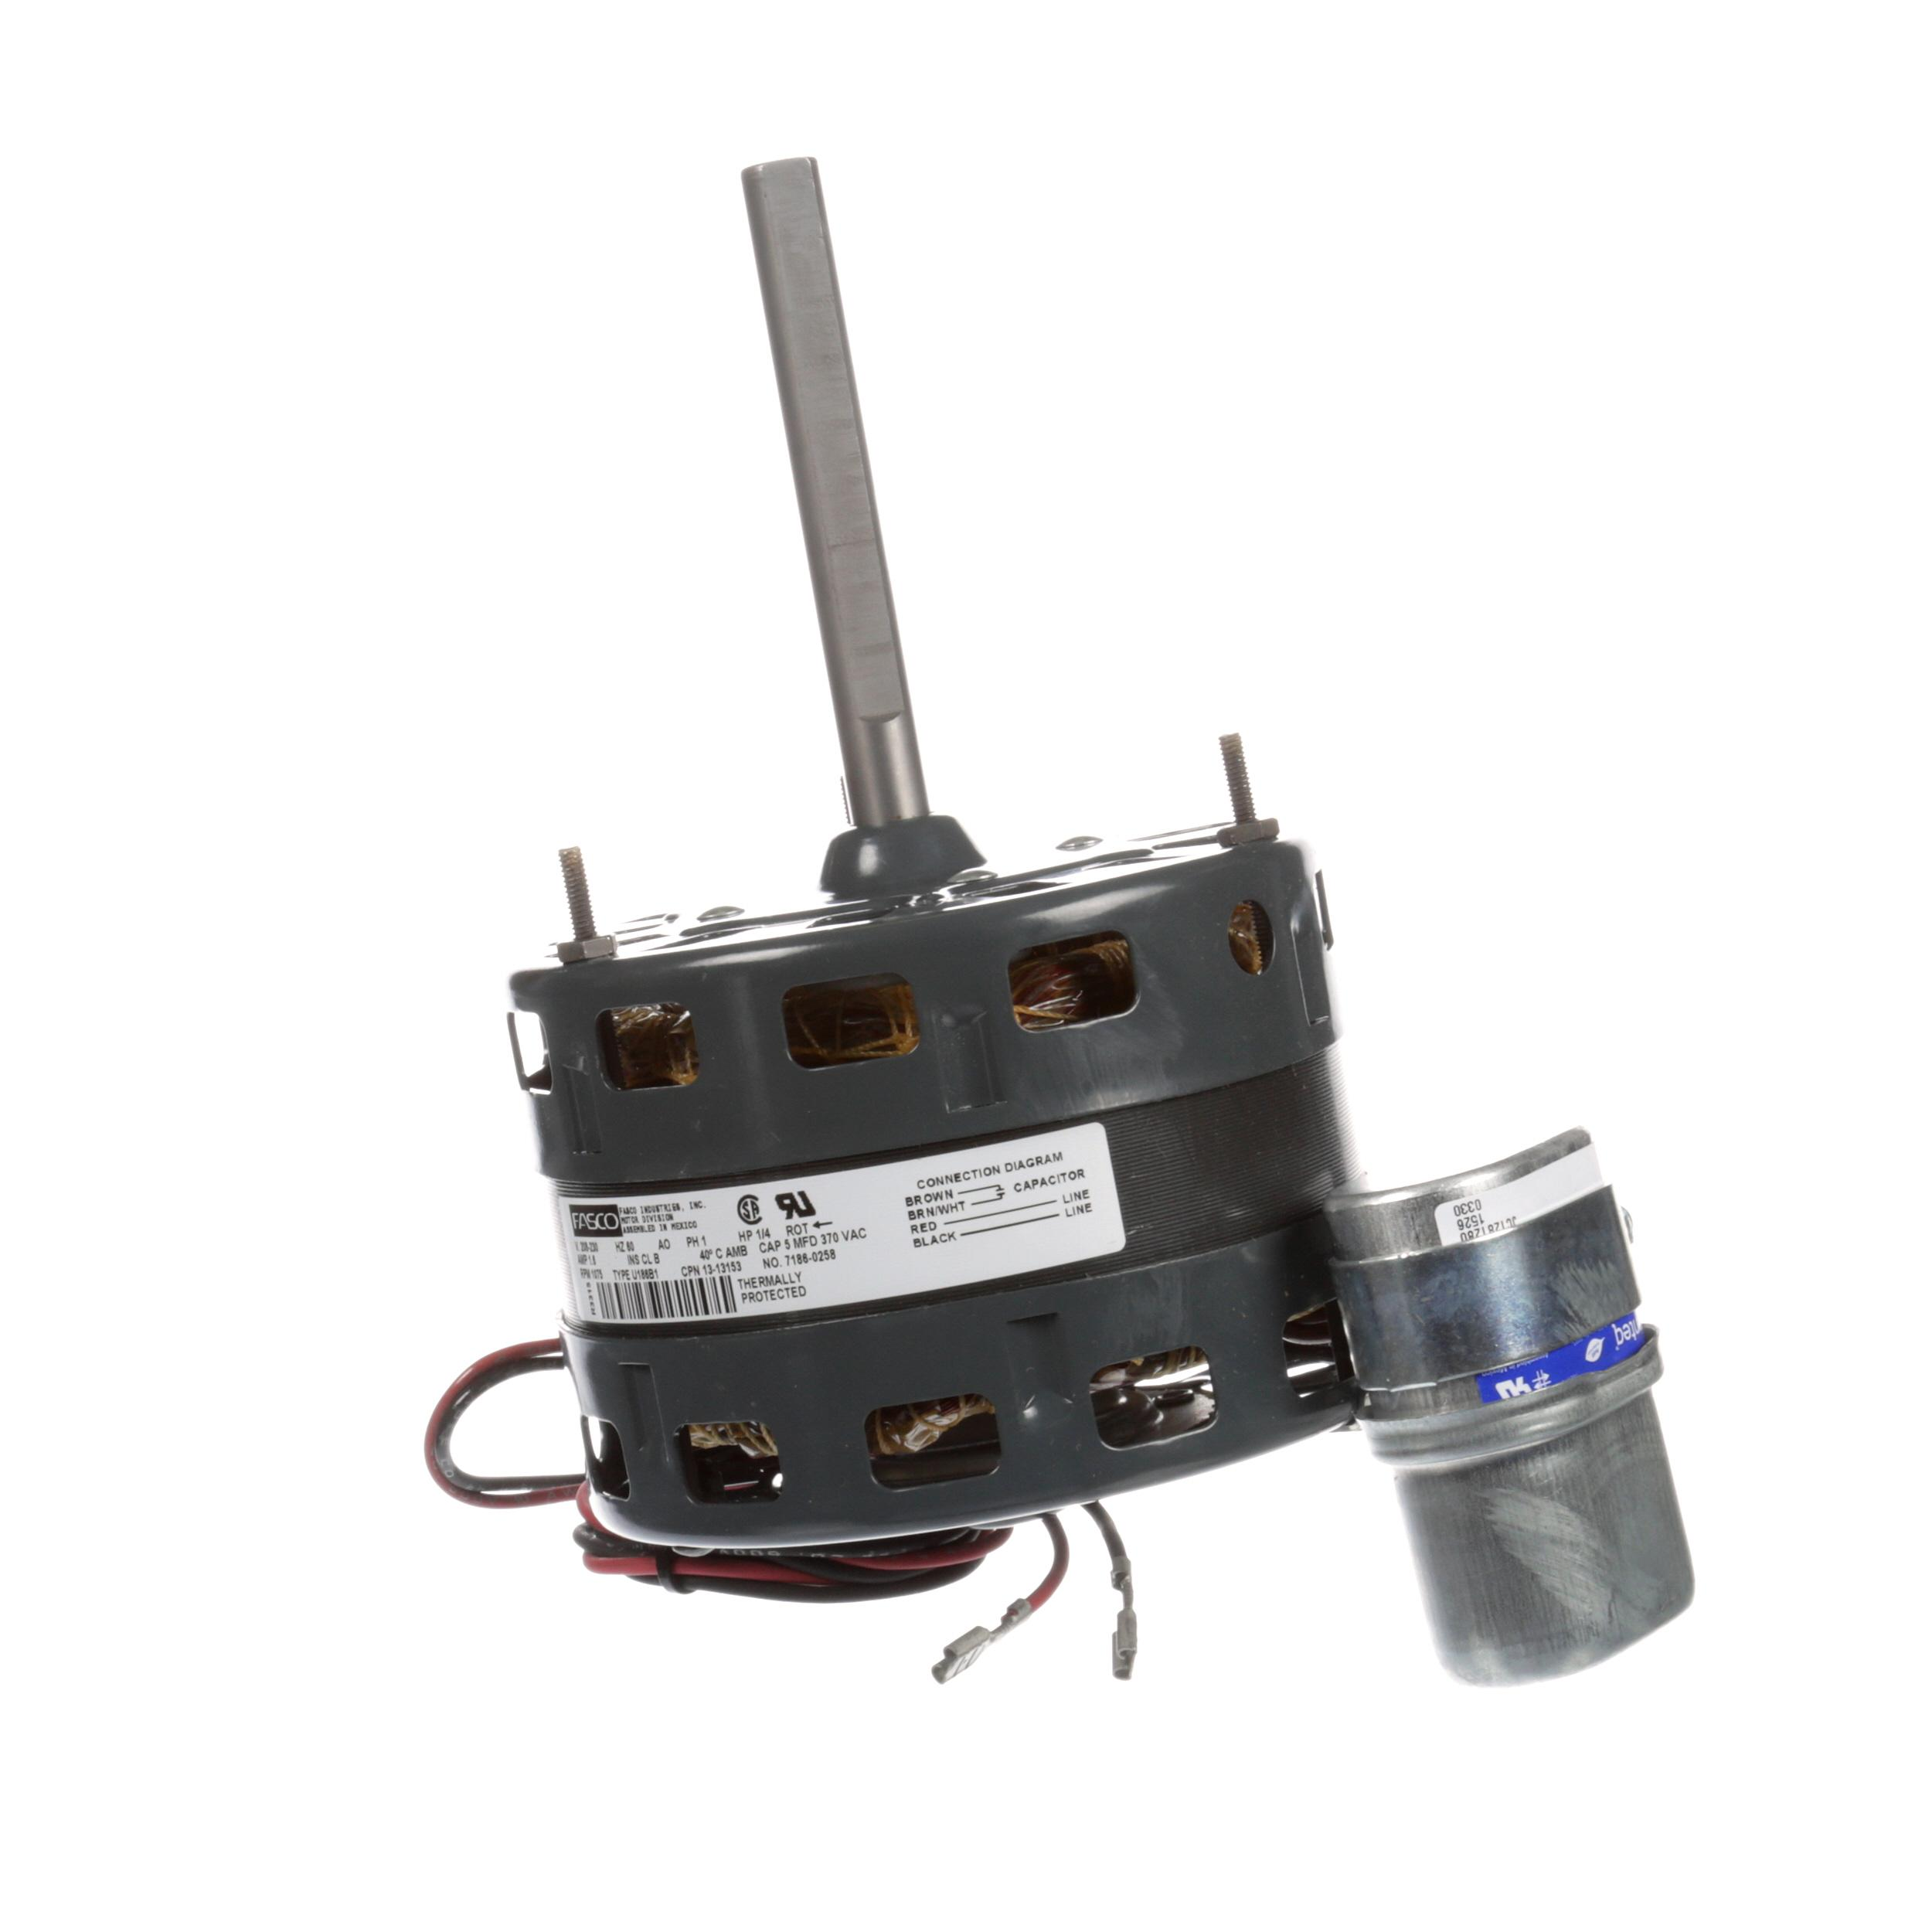 Master Bilt Condenser Fan Motor 7186 0258 1 4hp 230 60 1075rpm Psc Wiring Diagram Repalcement Parts And